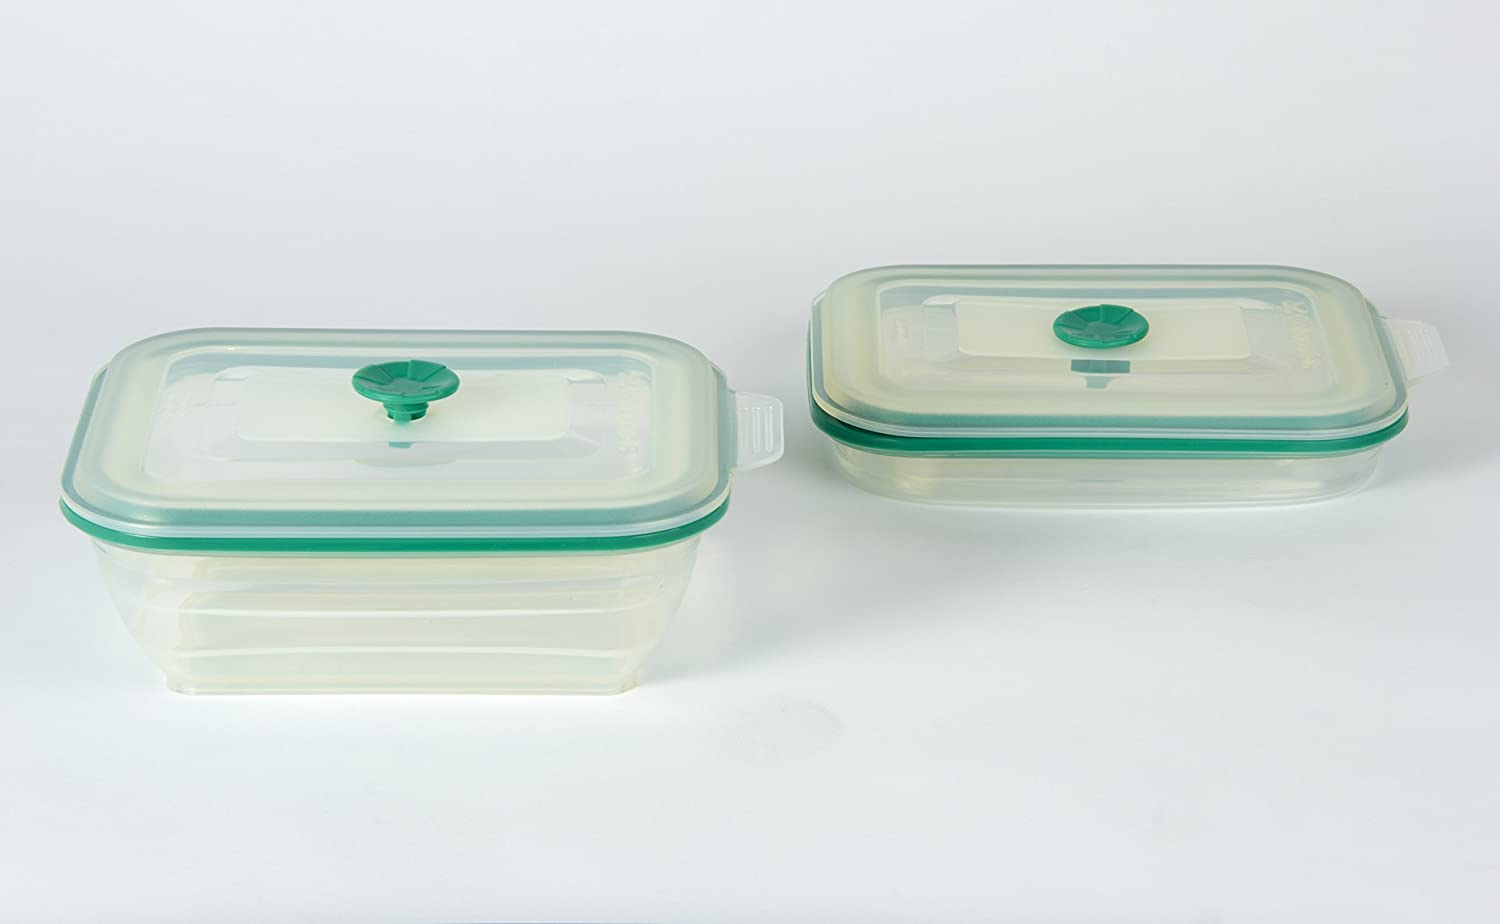 Collapsible Rectangular Food Container - 3 Cup